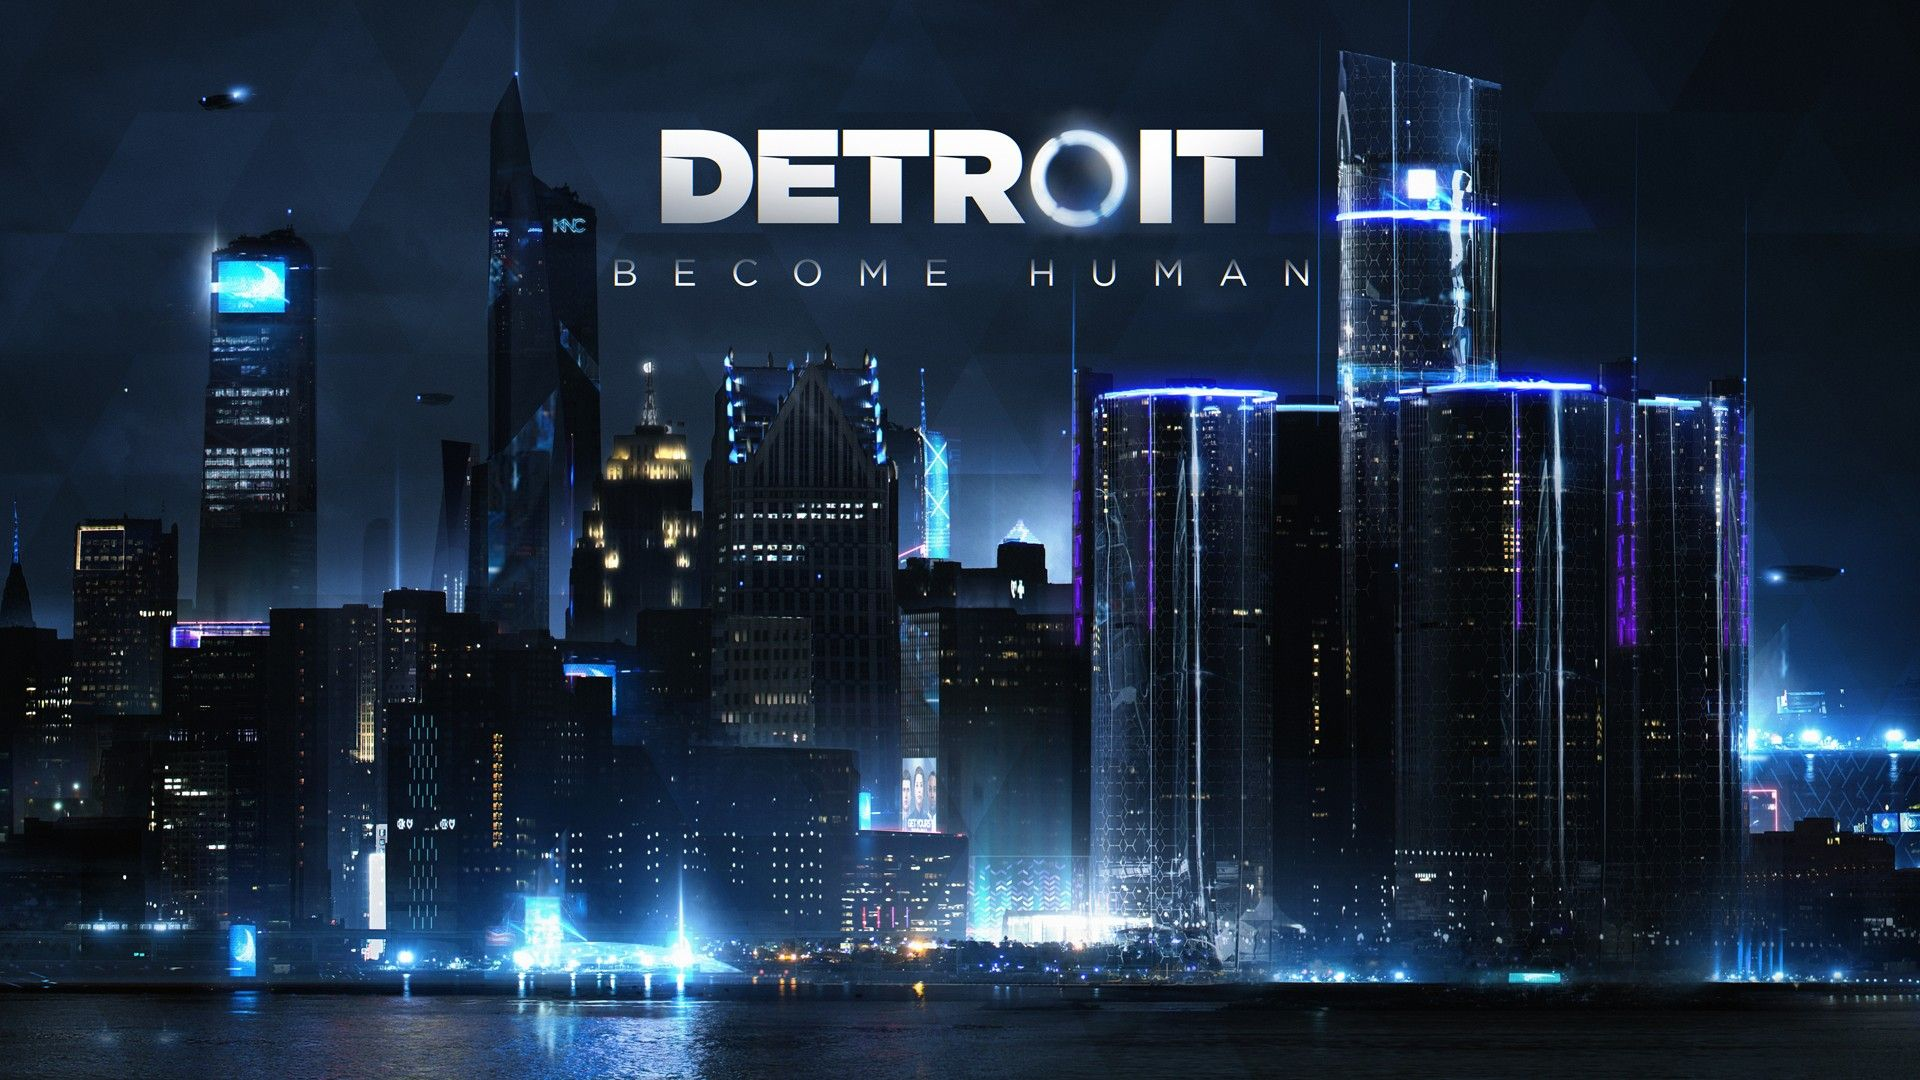 Sony swaps PES 2019 for Detroit: Become Human with July's PS Plus games